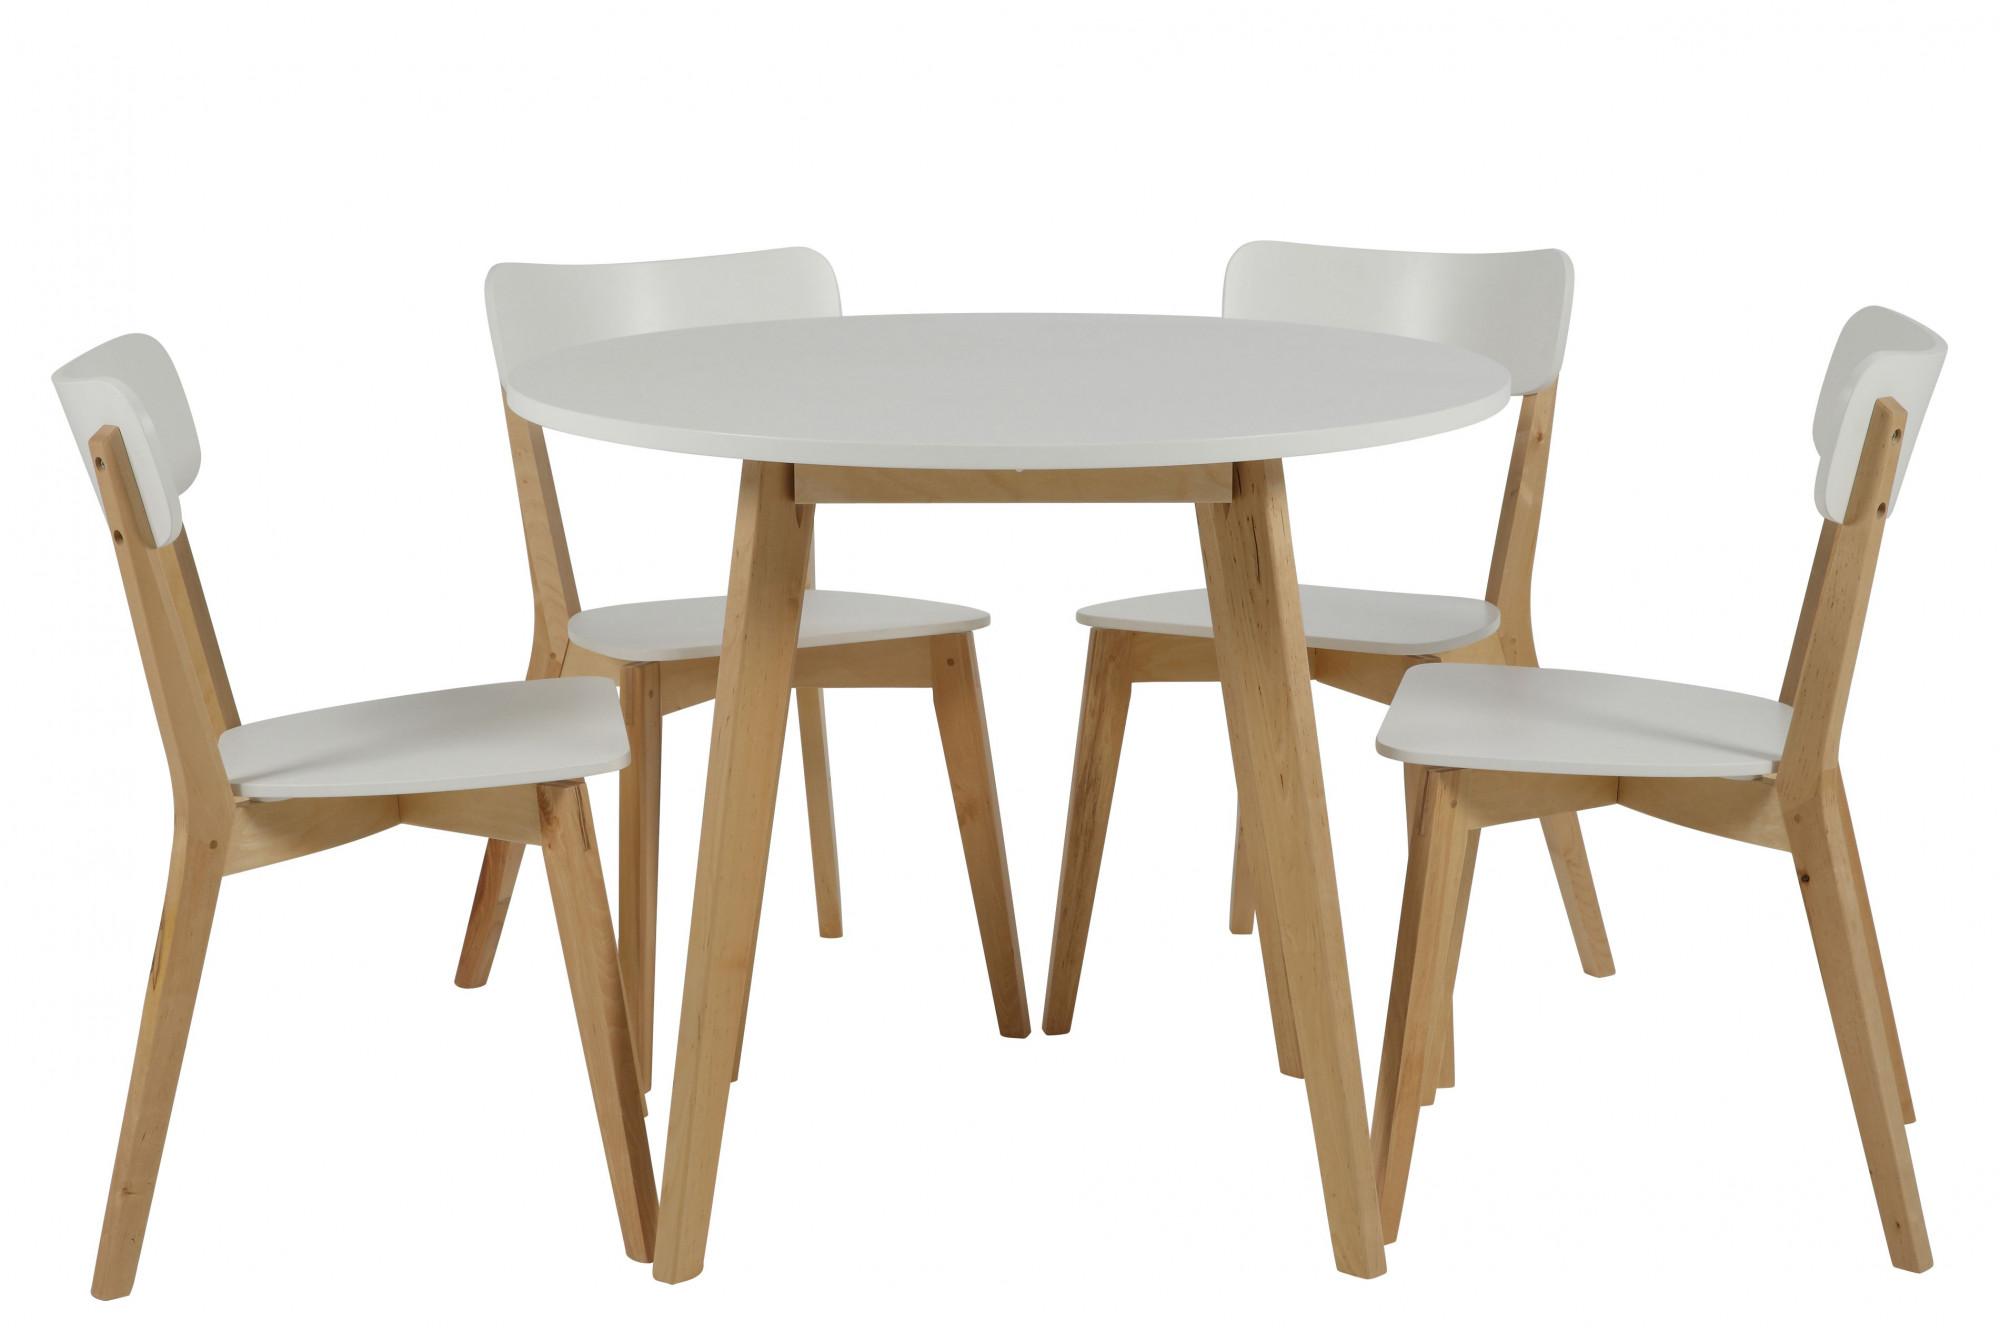 Table Ronde Scandinave Rallonge Petite Table Ronde Scandinave En Bois Massif Luza Hellin